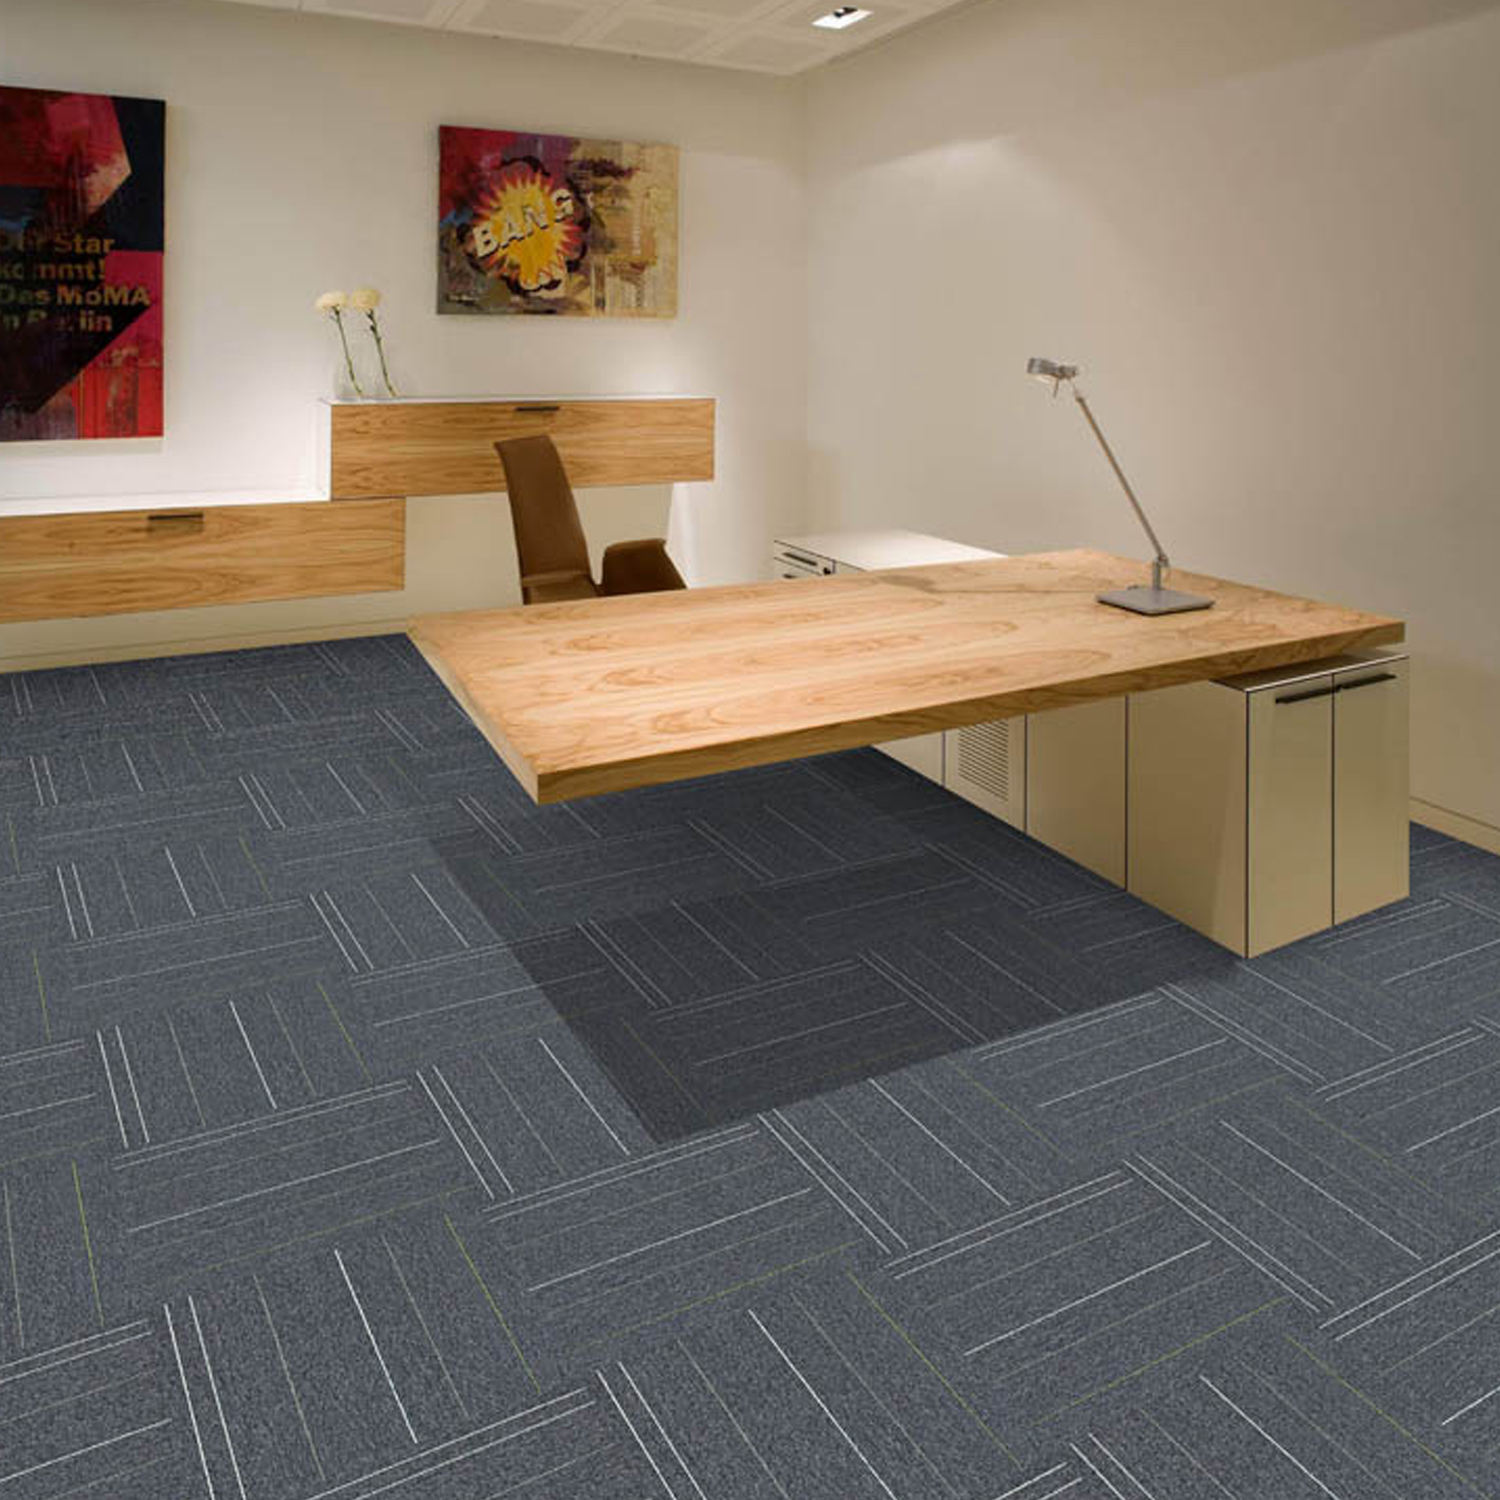 Modular commercial printed carpet commercial office carpet commercial hotel carpet